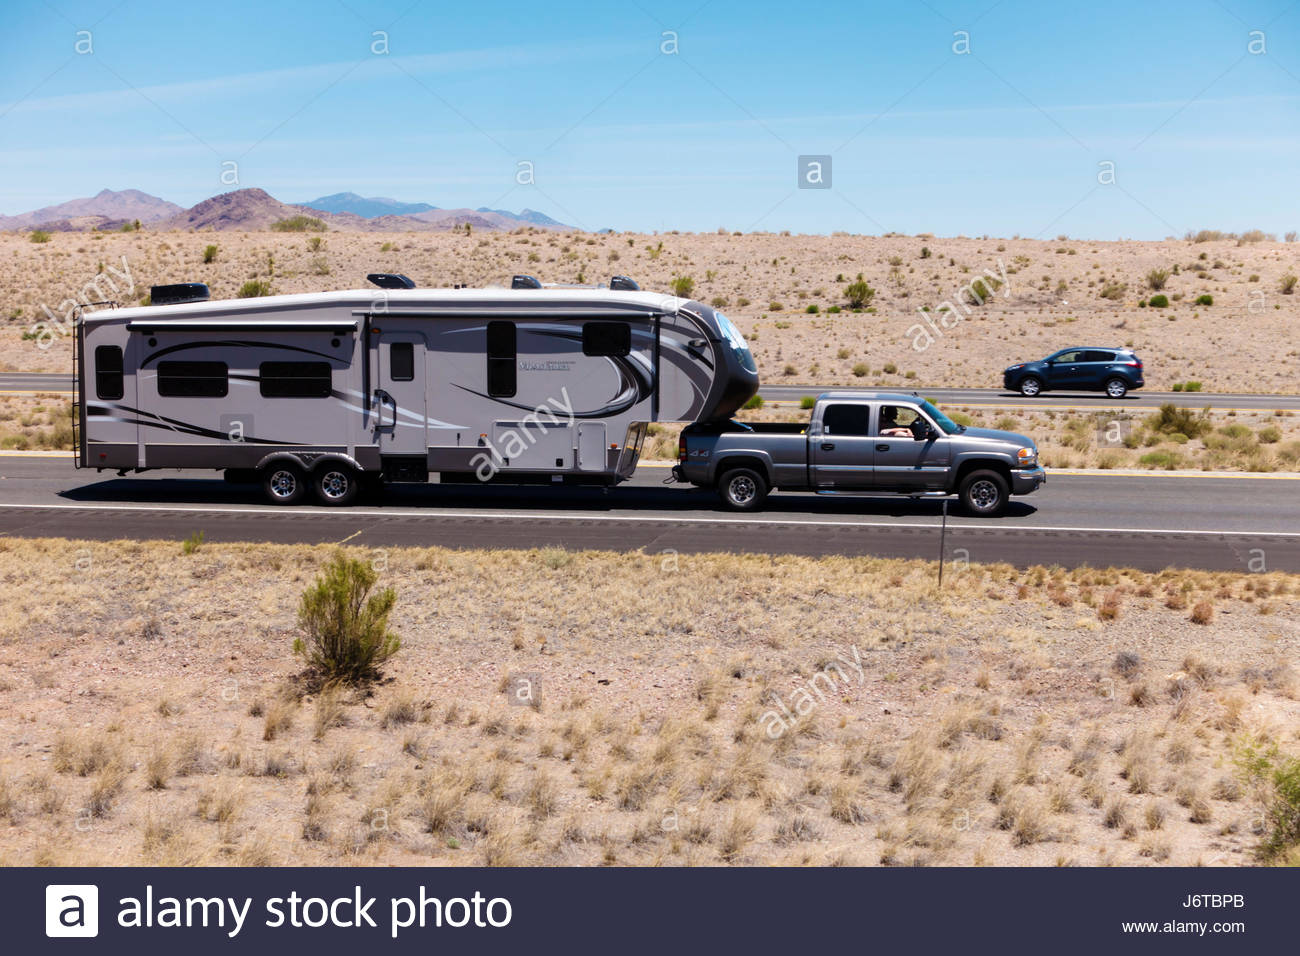 Pickup towing fifth wheel travel trailer on i 10 in southeastern arizona 3 people visible